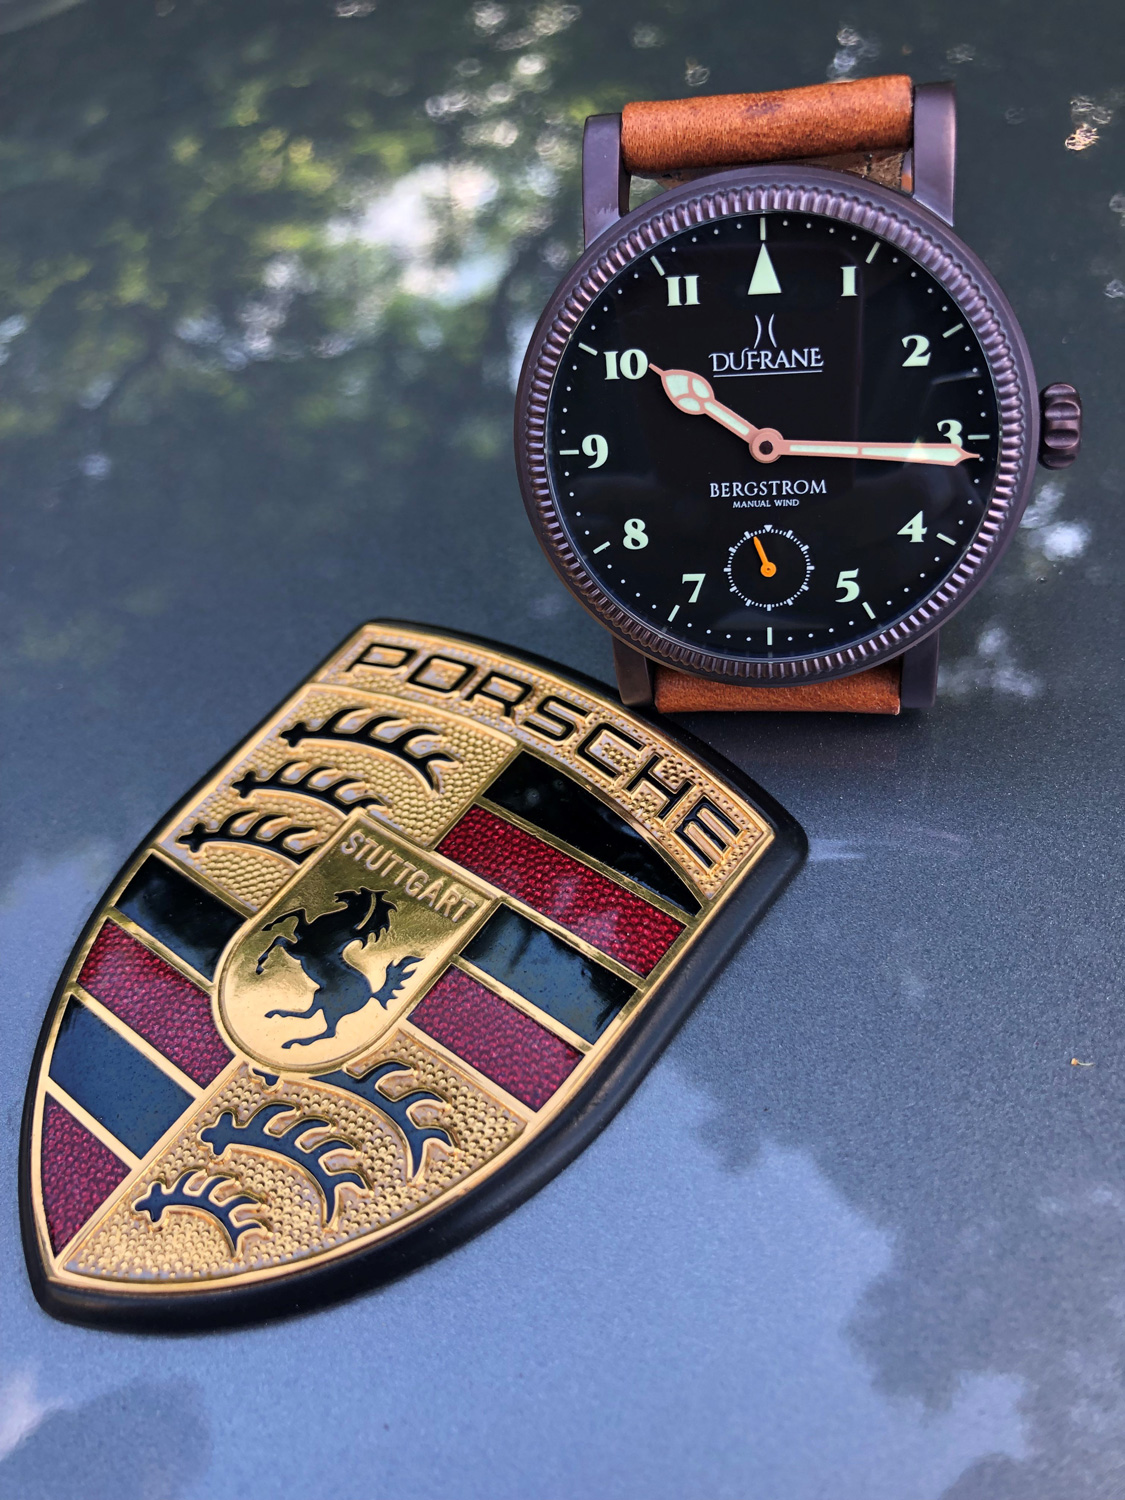 DuFrane watches on a Porsche